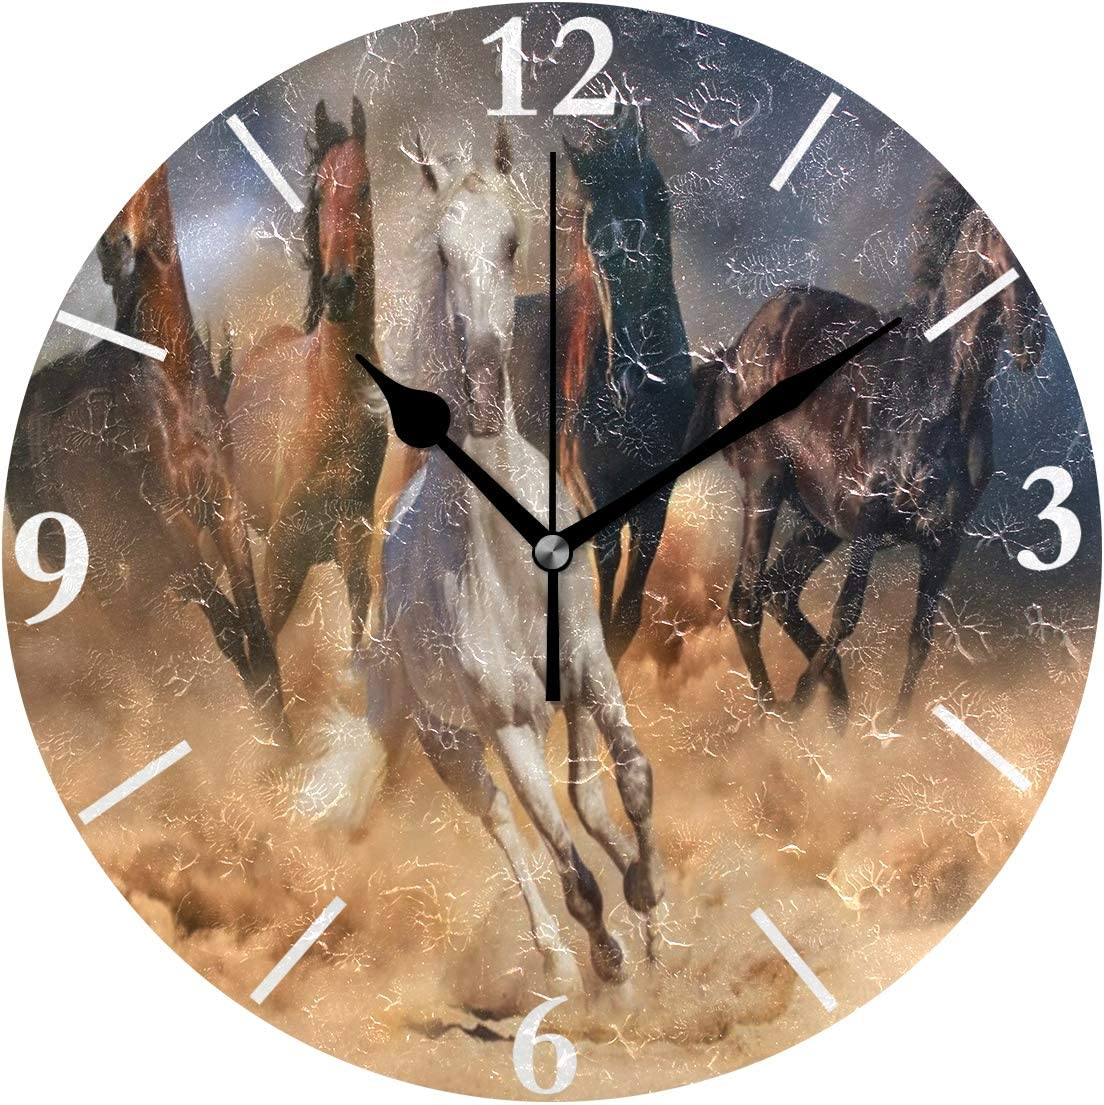 SLHFPX Wall Clock Running Horse Silent Non Ticking Decorative Round Digital Clocks Indoor Outdoor Kitchen Bedroom Living Room